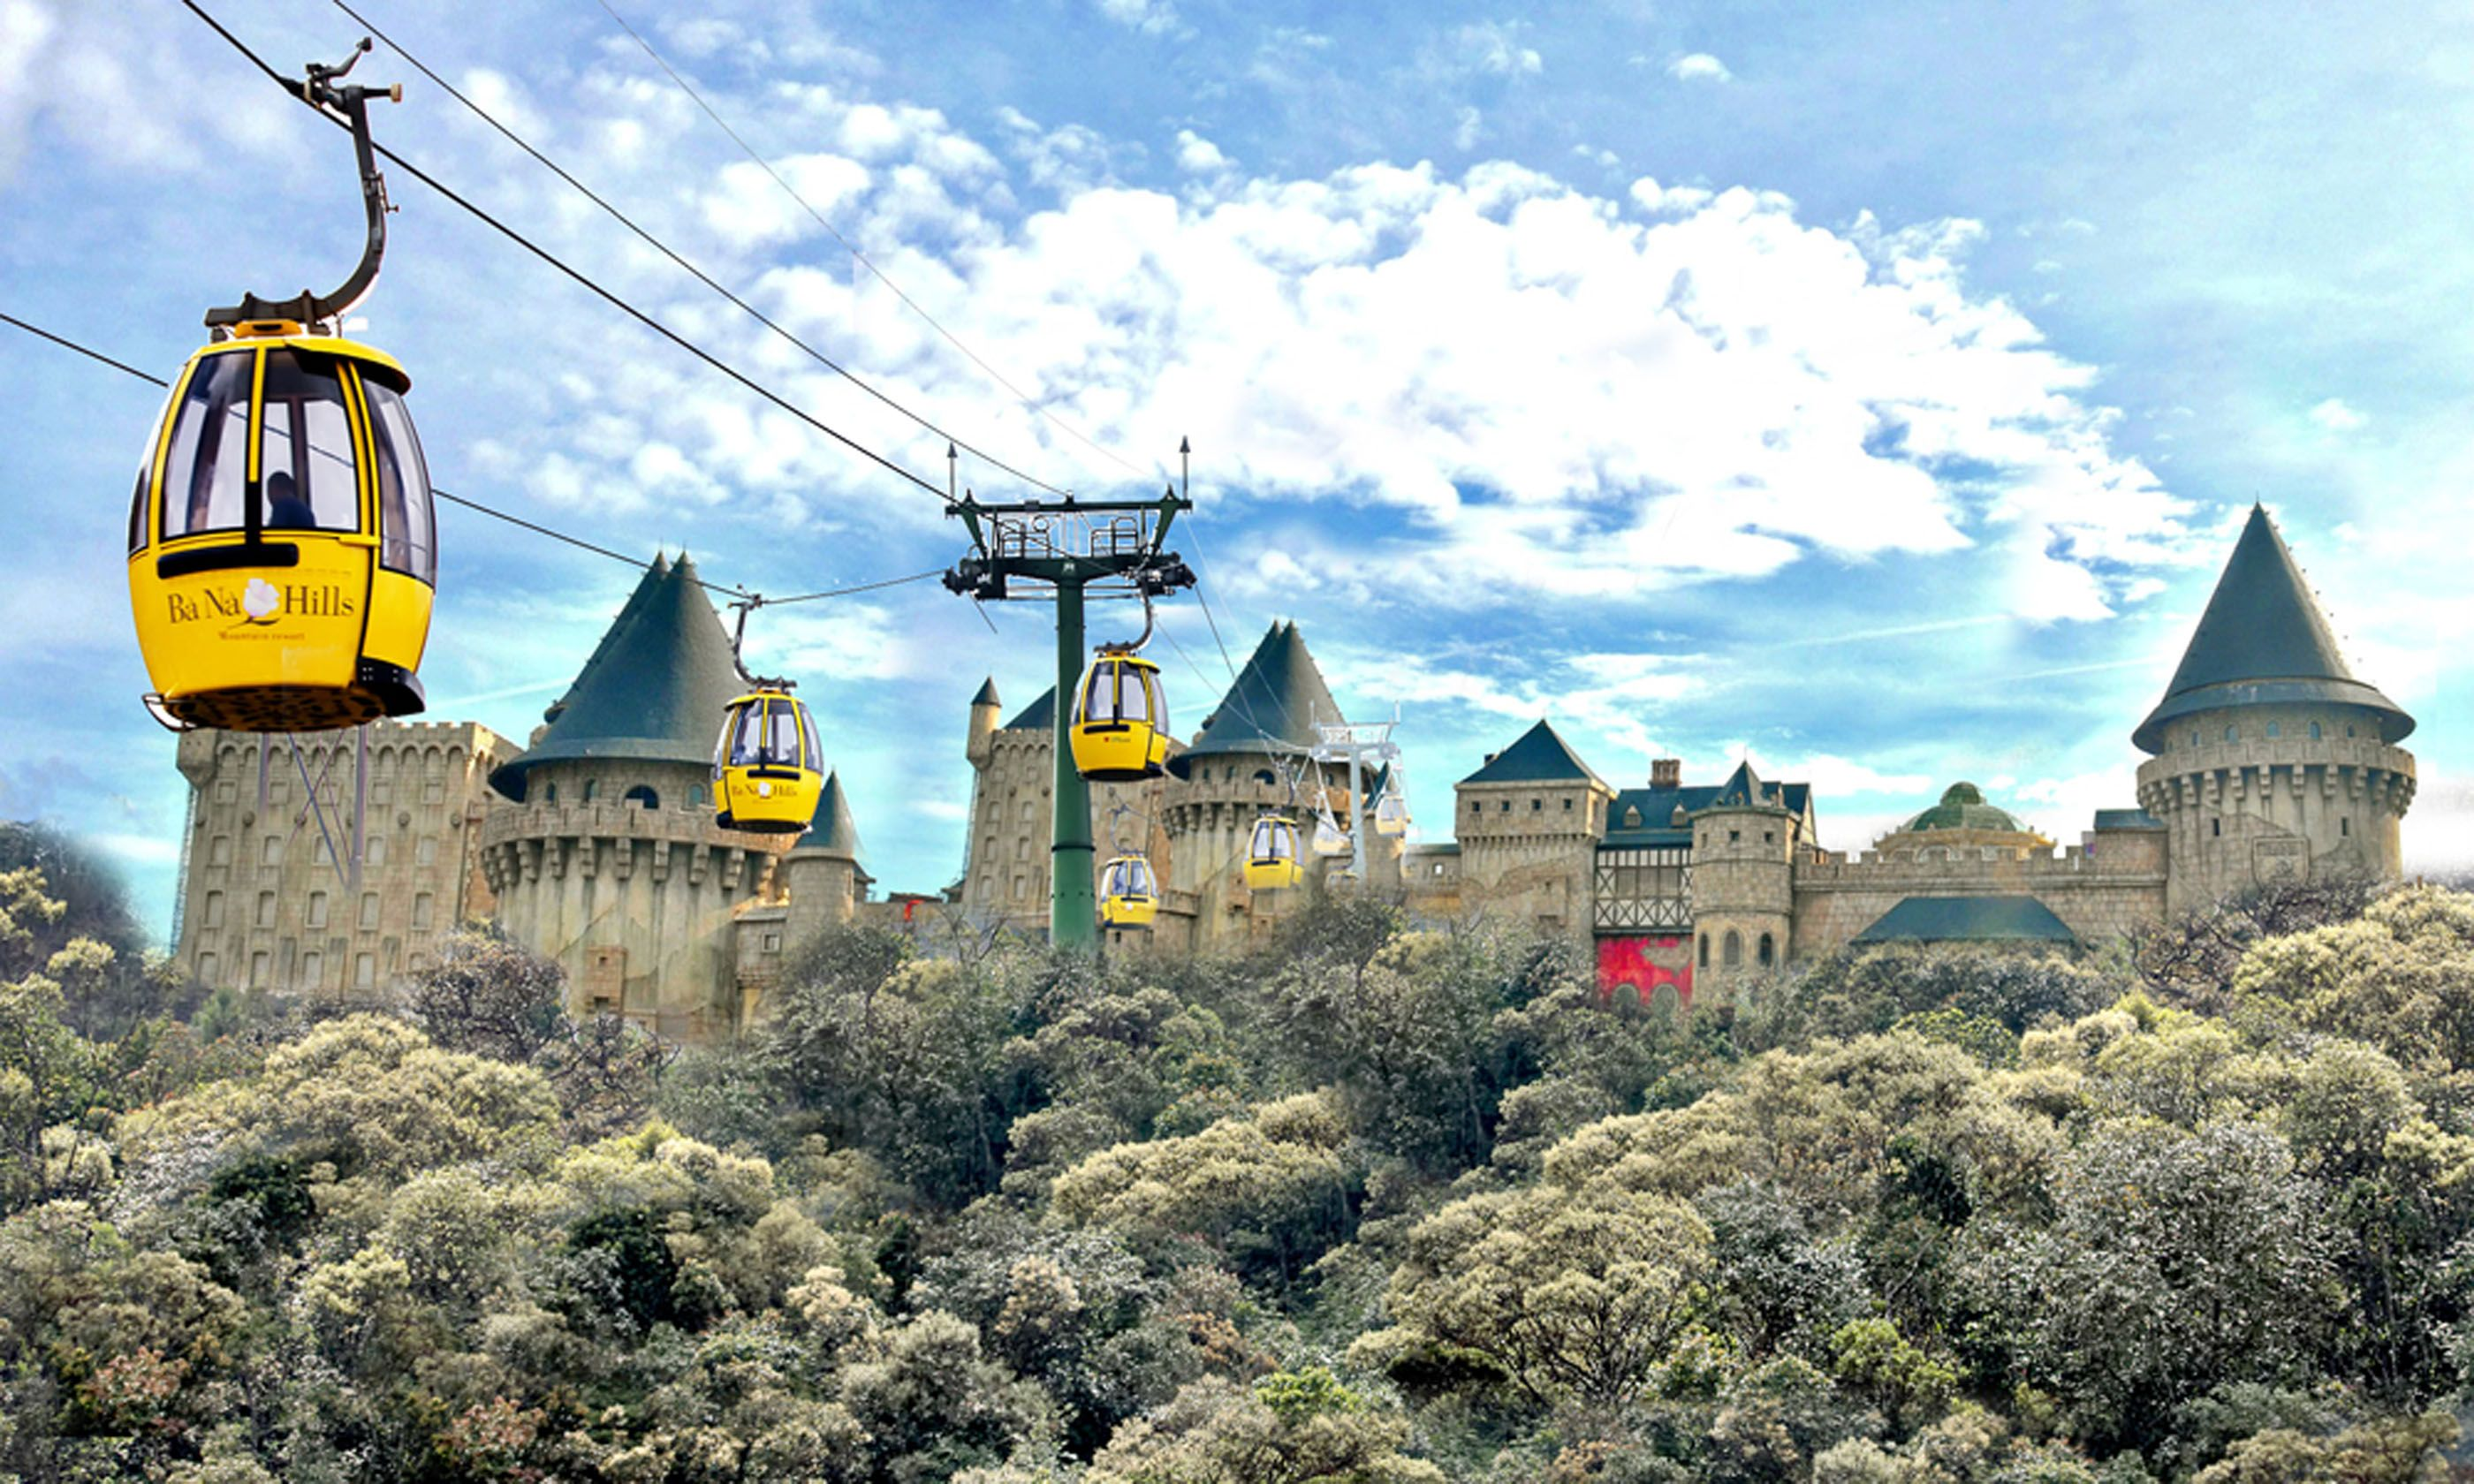 Cable cars leaving the world's biggest and strangest station (Ba Na Hills Cable Car)